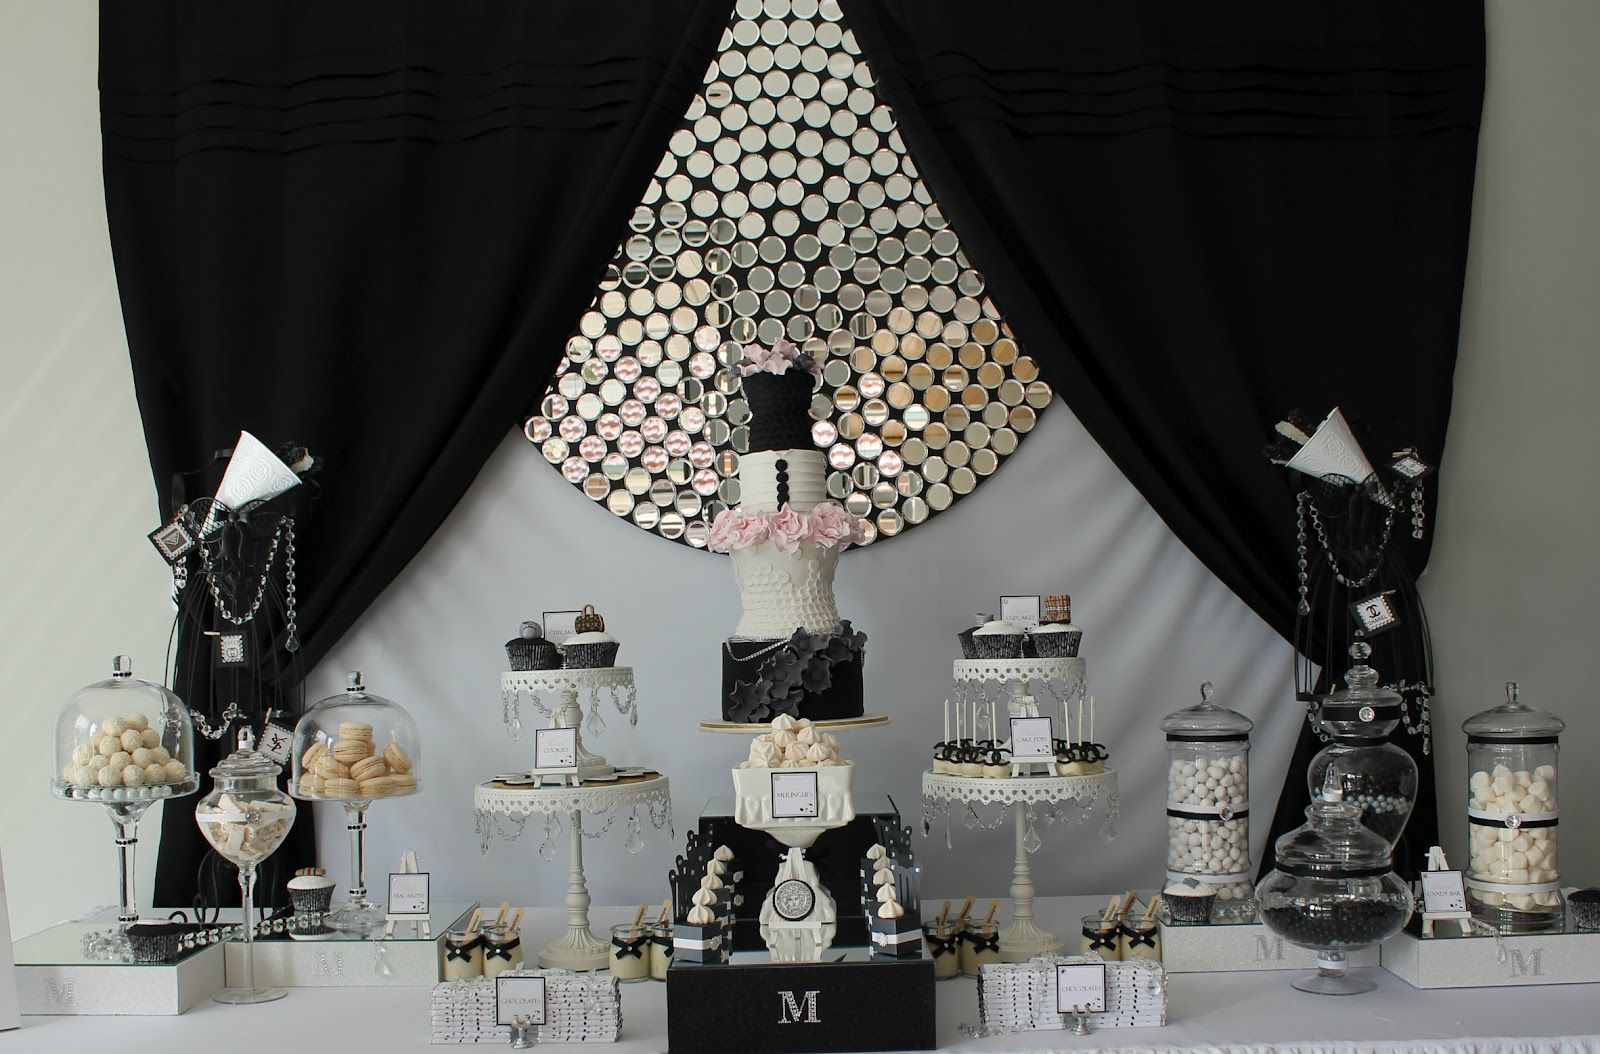 Black And White Party Food Ideas The Dessert Table Also Included